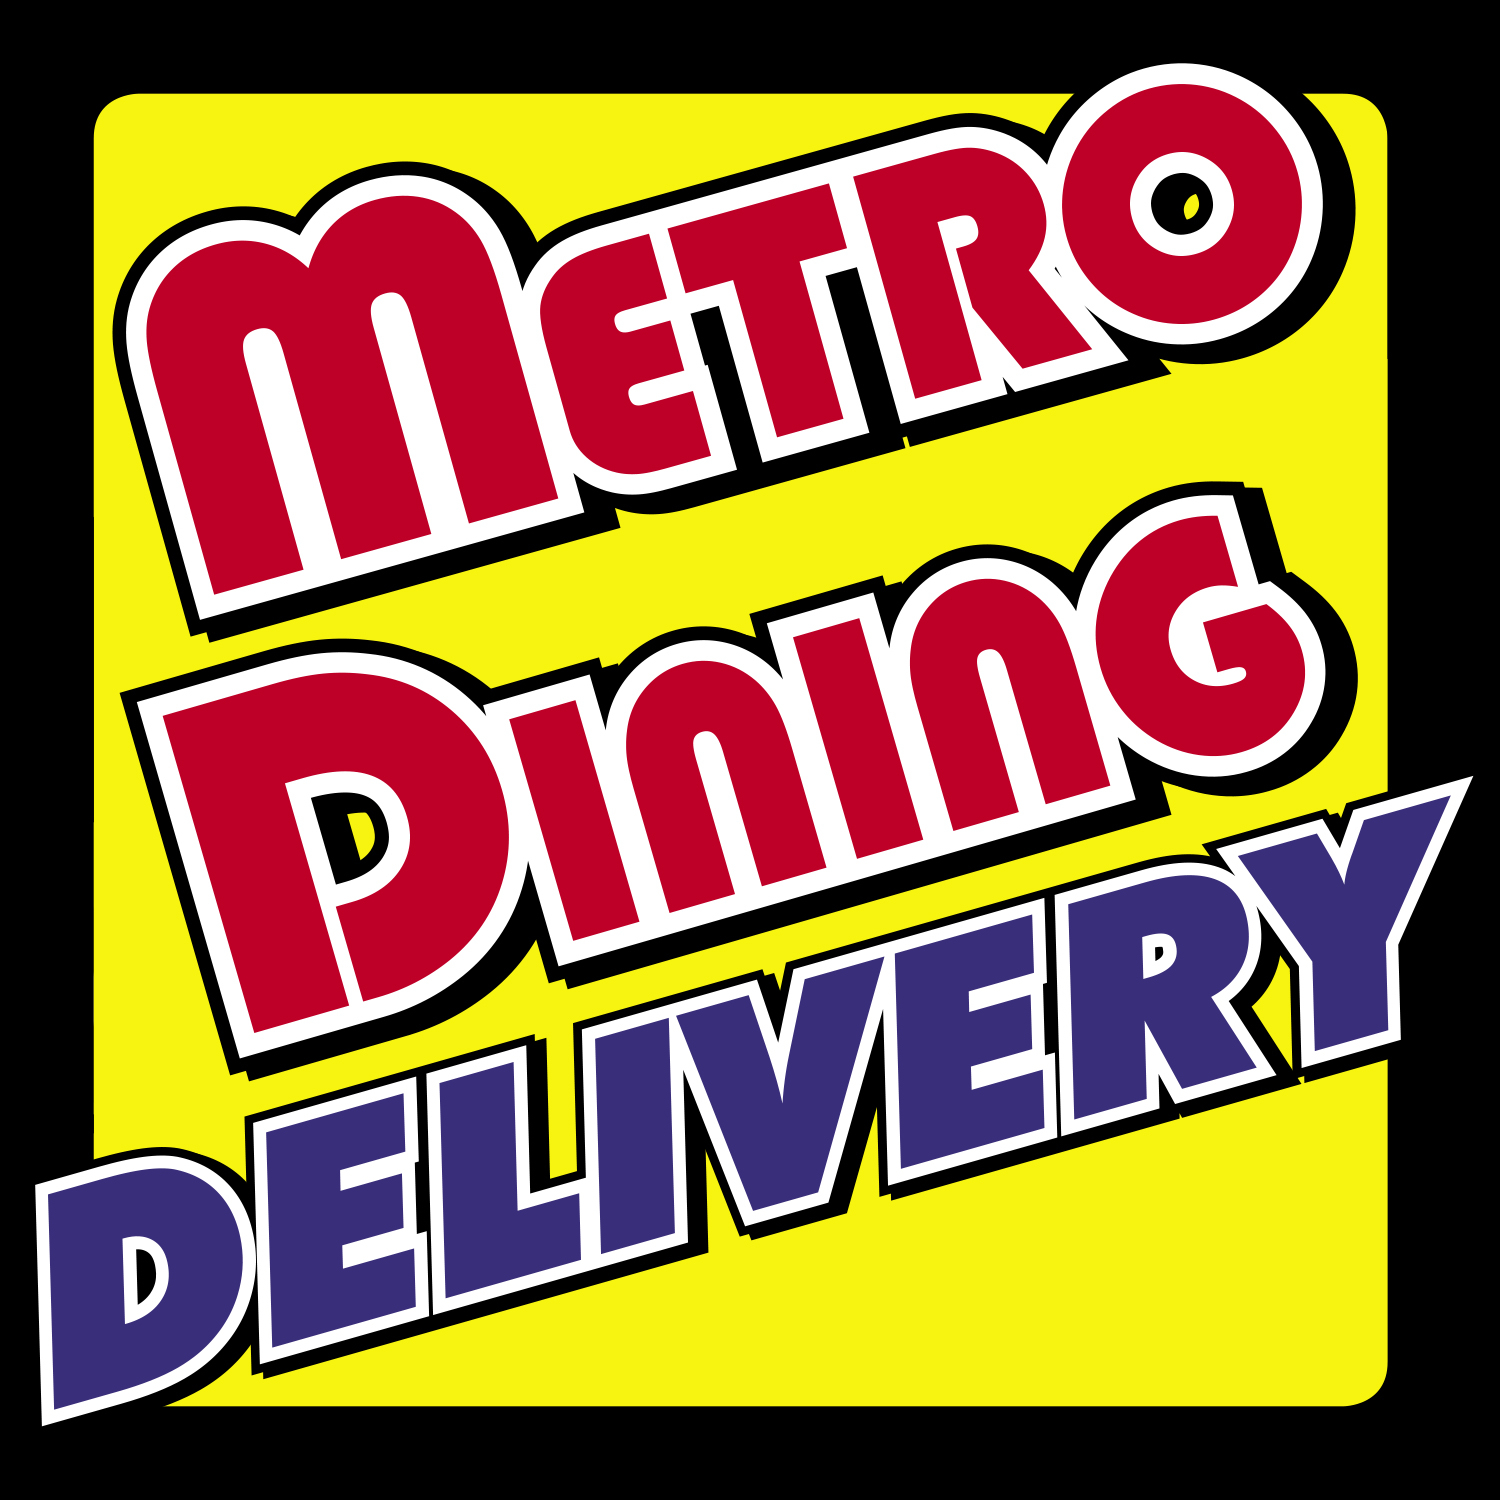 Food Delivery Lincoln Ne: Restaurant Delivery Service